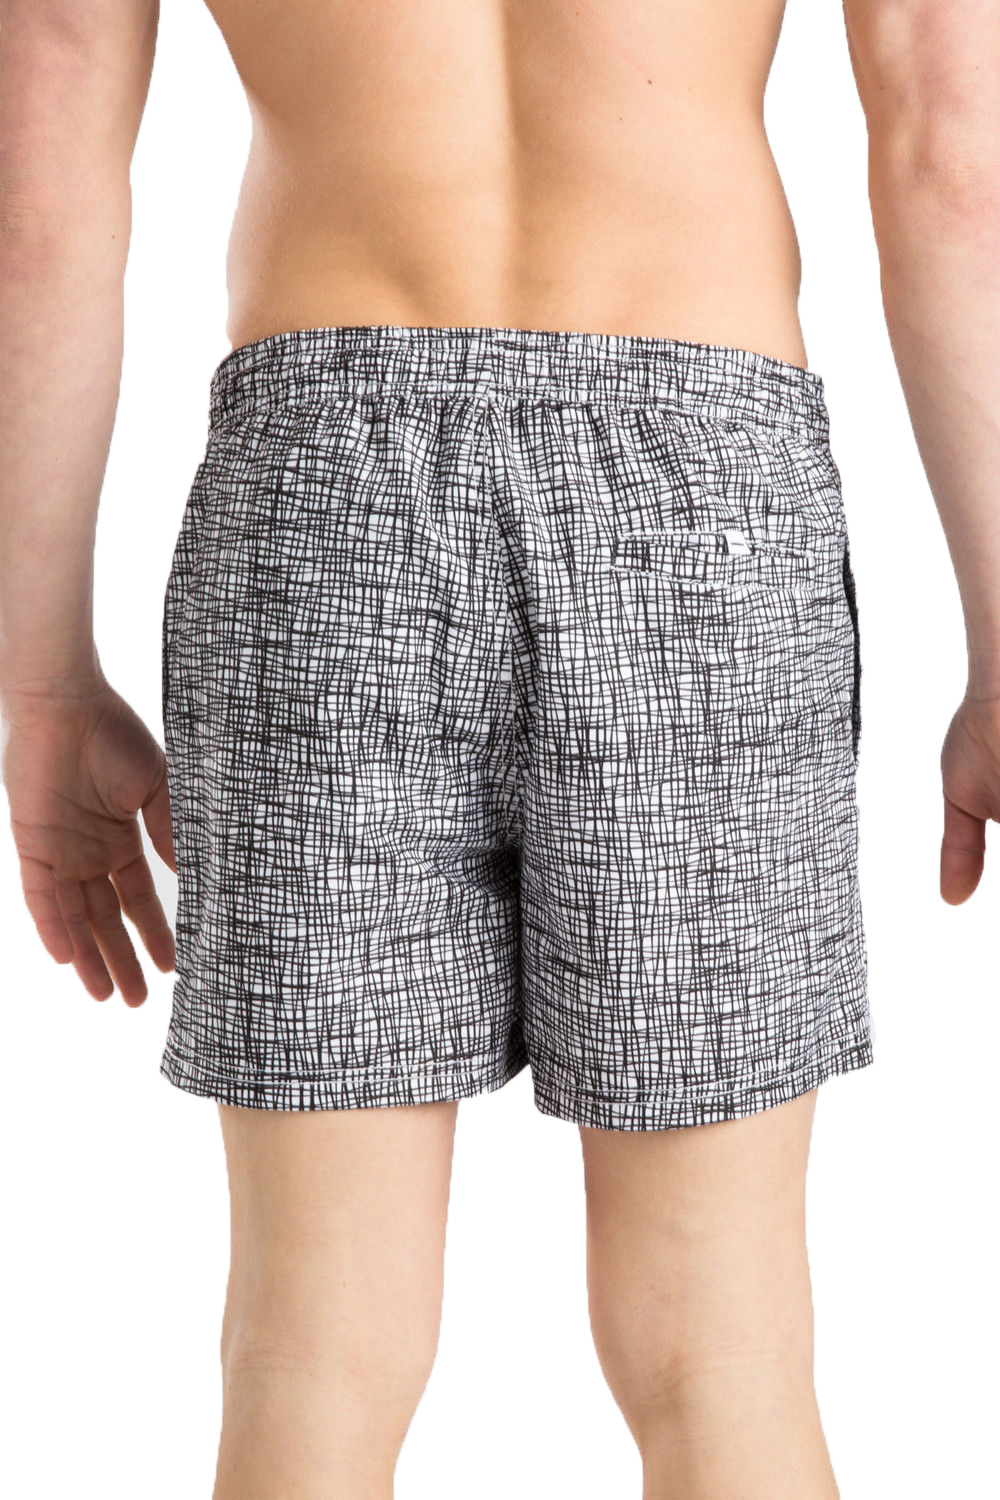 Men's Swim Shorts and Swim Trunks on Sale Looking for swim shorts for men that are stylish and won't cost a fortune? Check out the Original Penguin Swim Outlet.